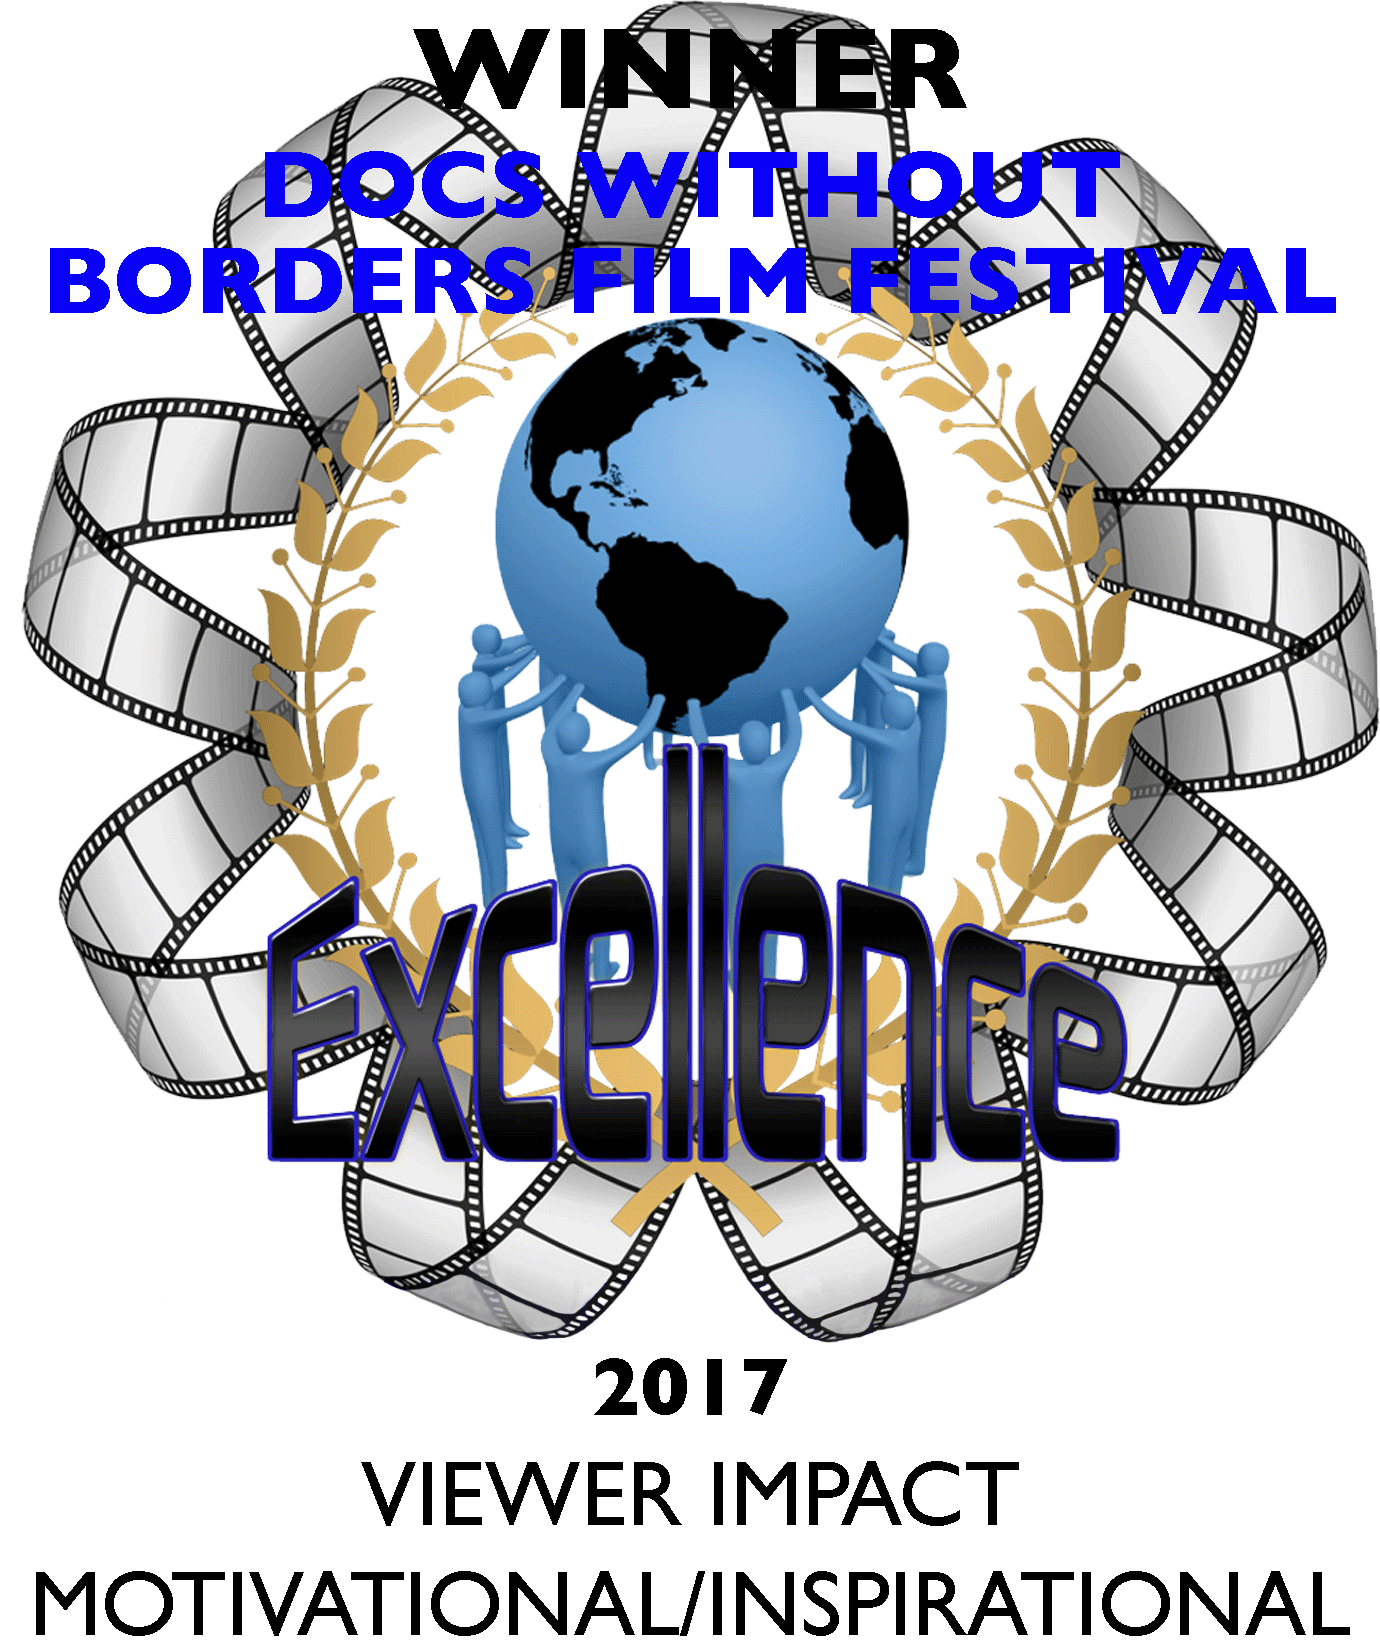 Sofia Wellman - Whats Love Got To Do With It - Film by Sofia Wellman - Docs Without Borders Film Festival - Winner Of Excellence - Viewer Impact - Motivational Inspirational - 2017